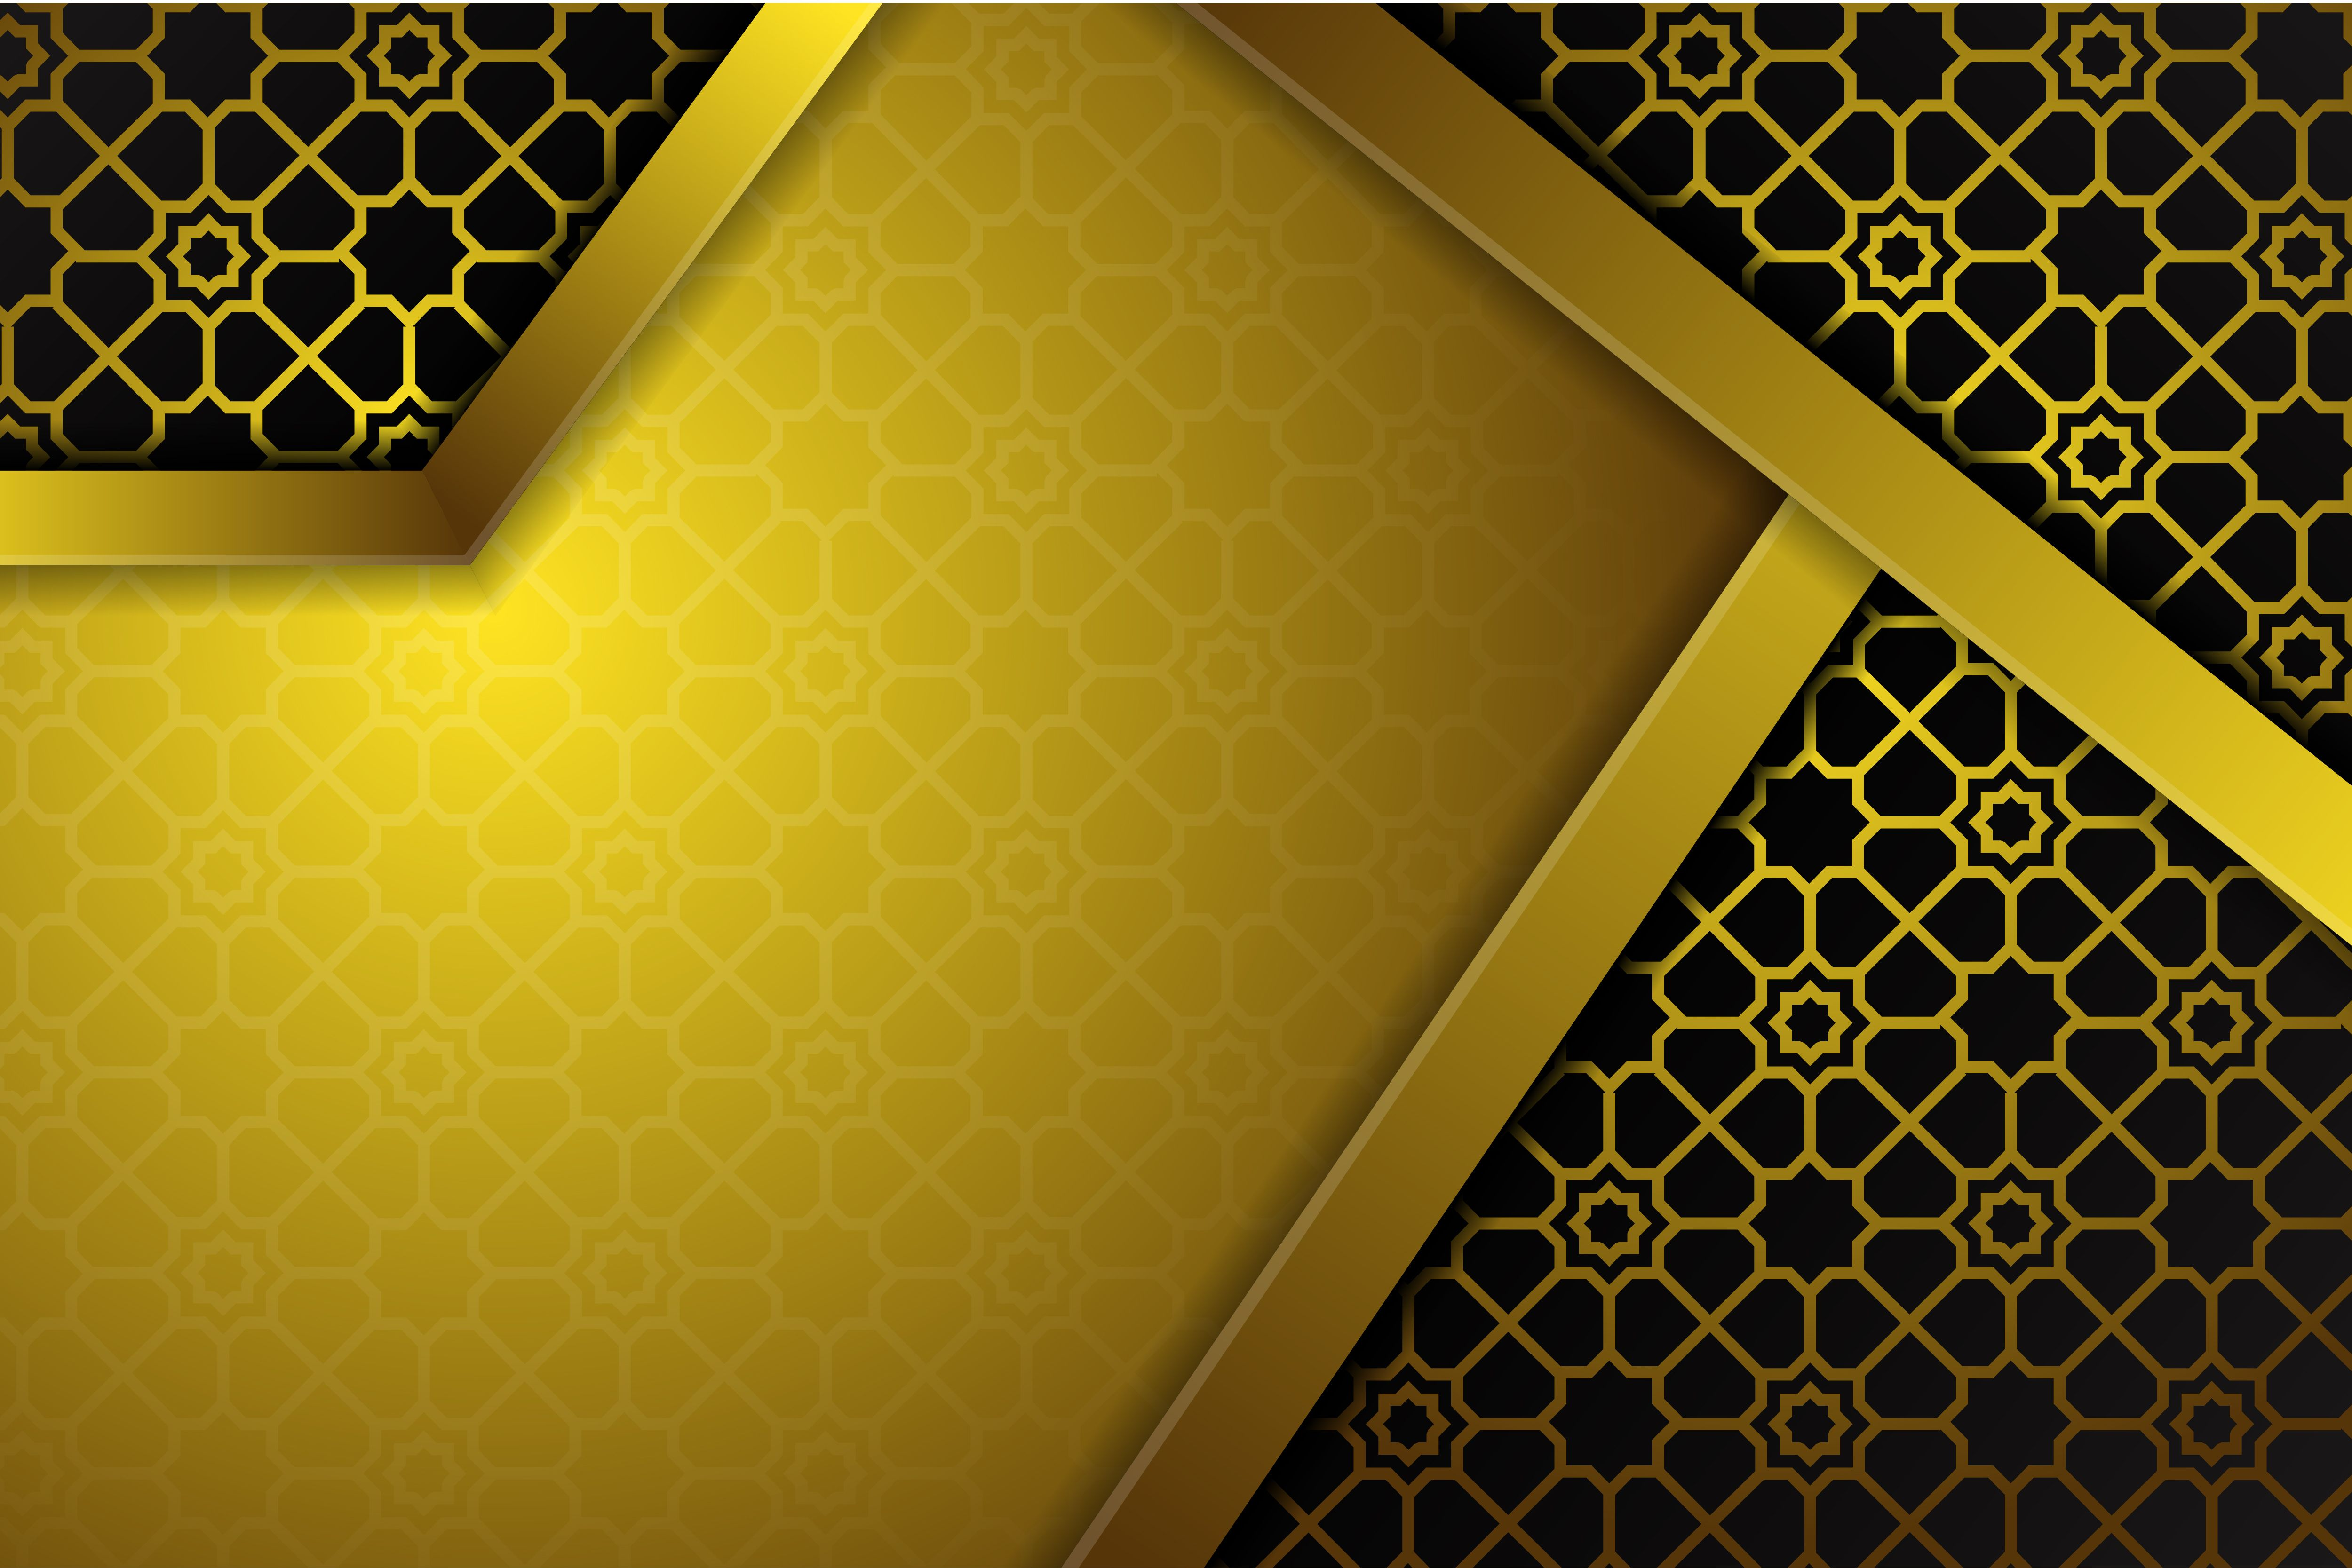 Gold Black Islamic Pattern Background Graphic By Noory.shopper · Creative  Fabrica | Islamic Pattern, Background Patterns, Islamic Background Vector